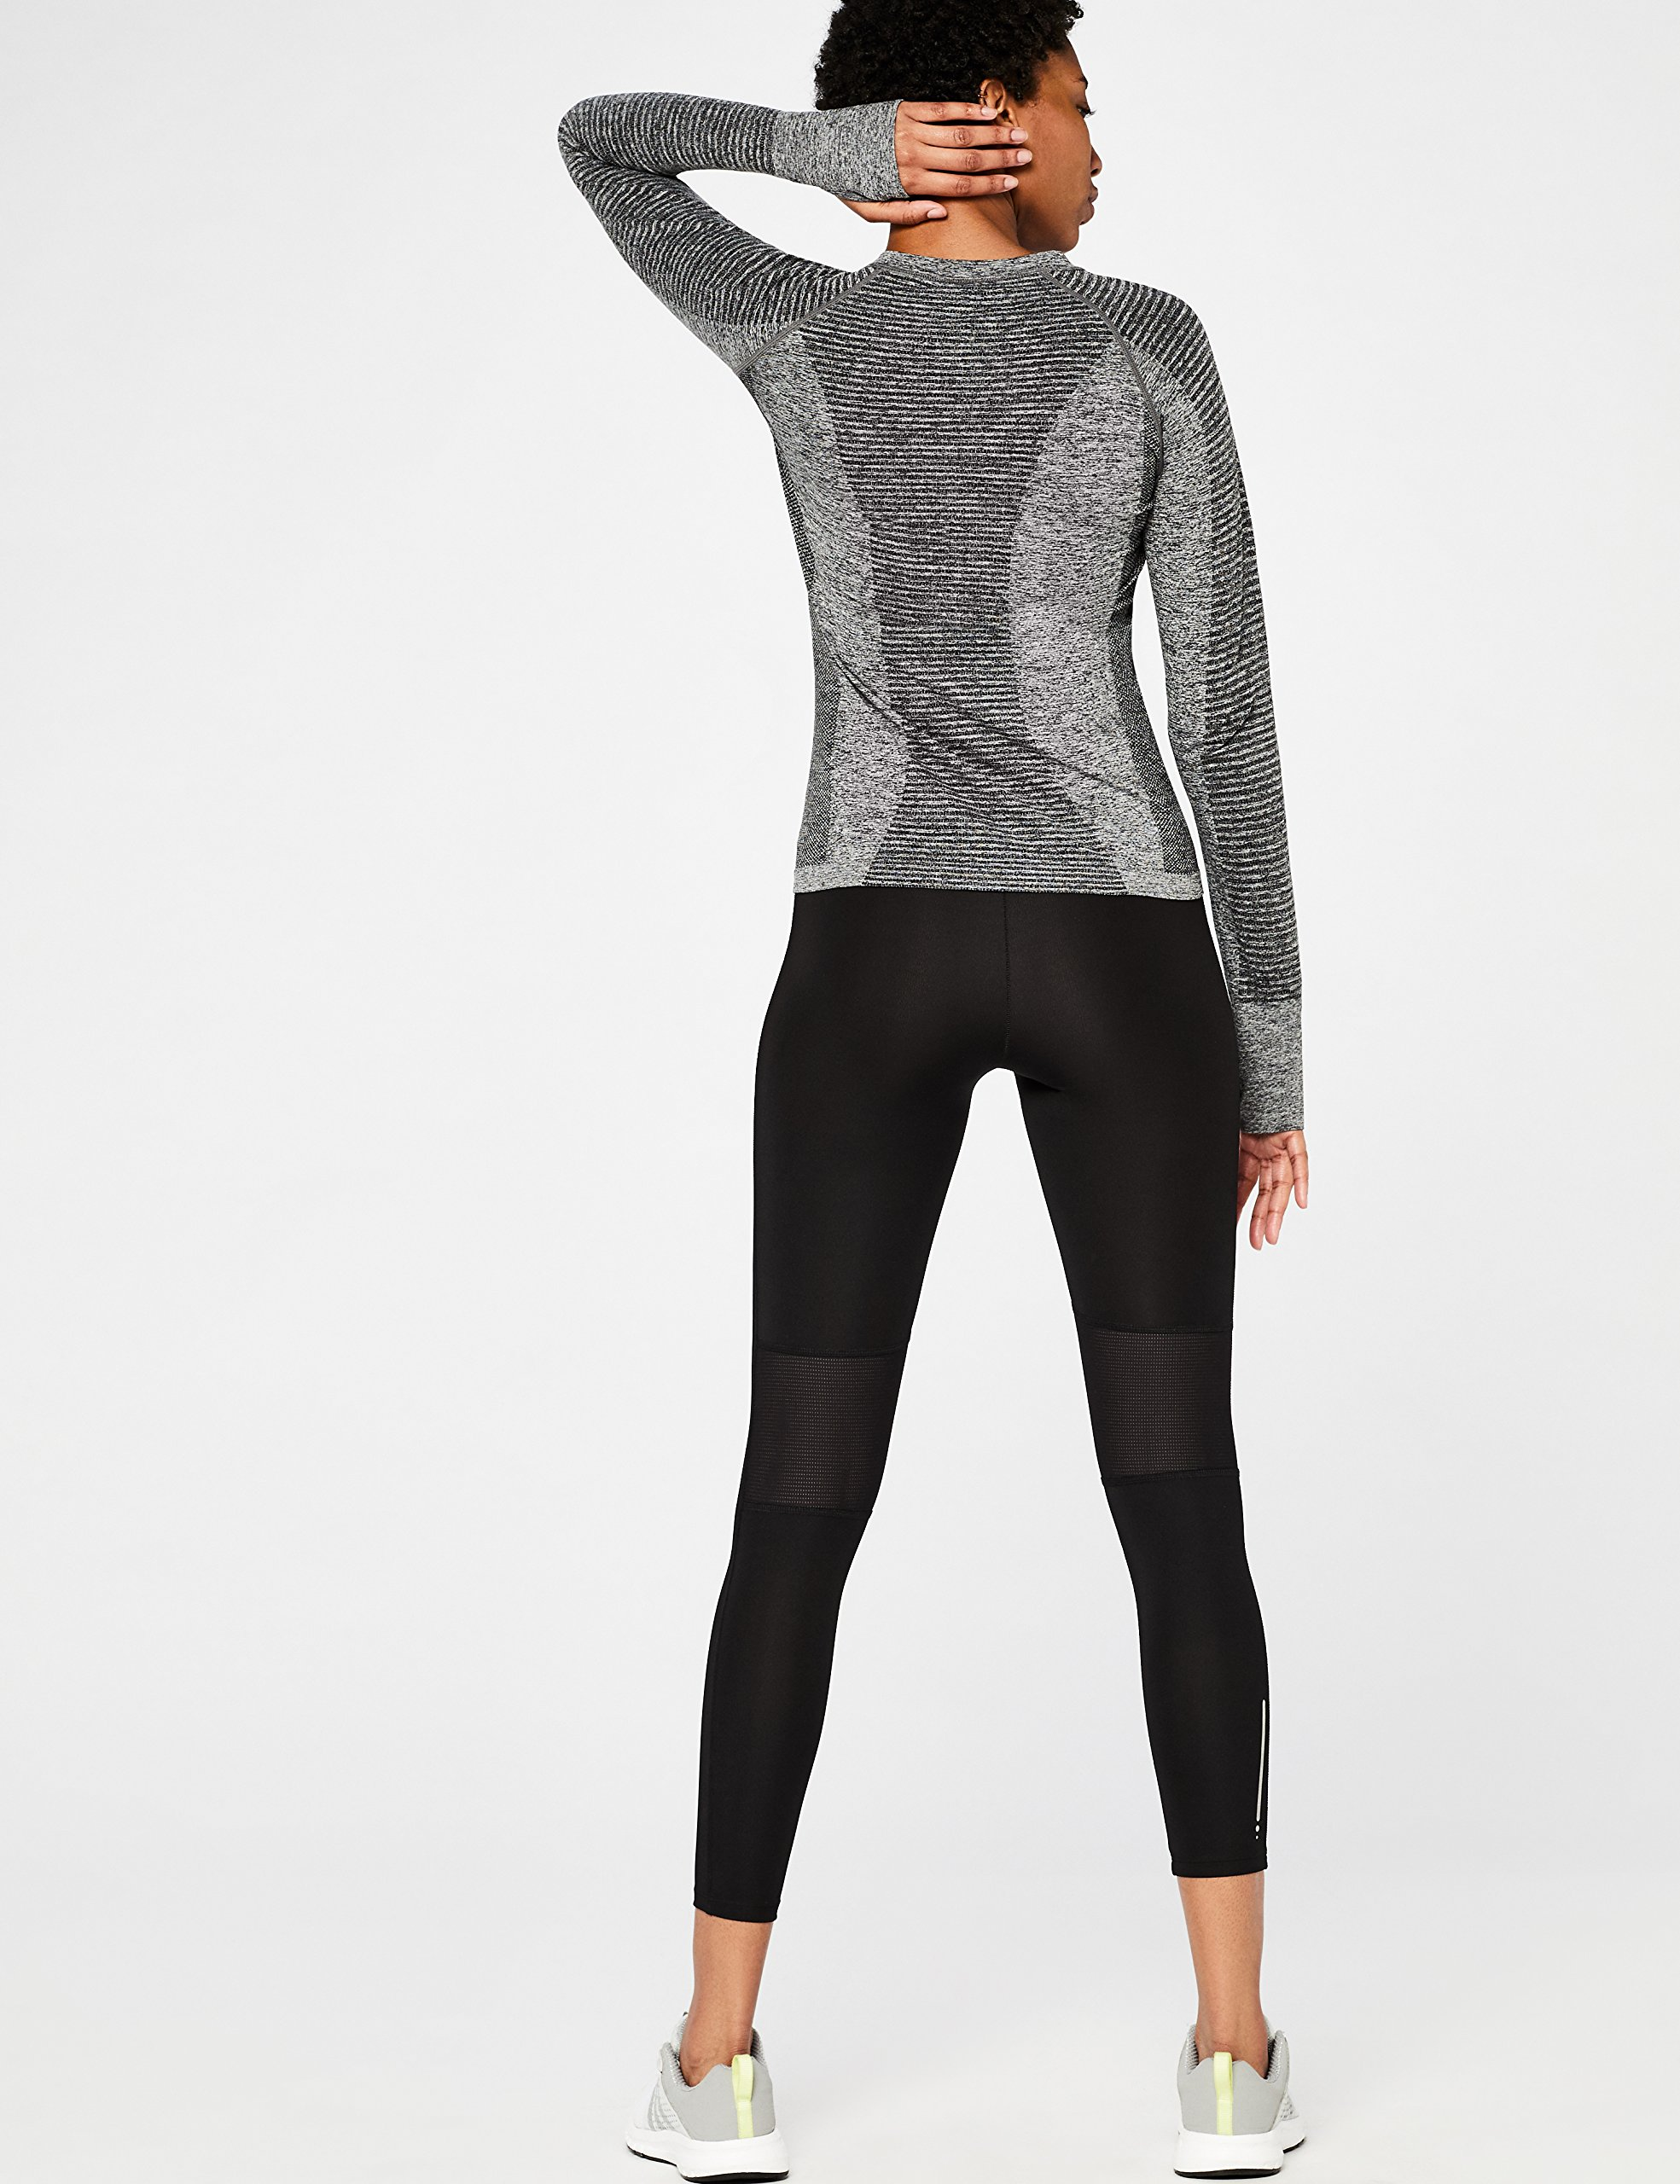 Amazon Brand - AURIQUE Women's Seamless Long Sleeve Sports Top 5